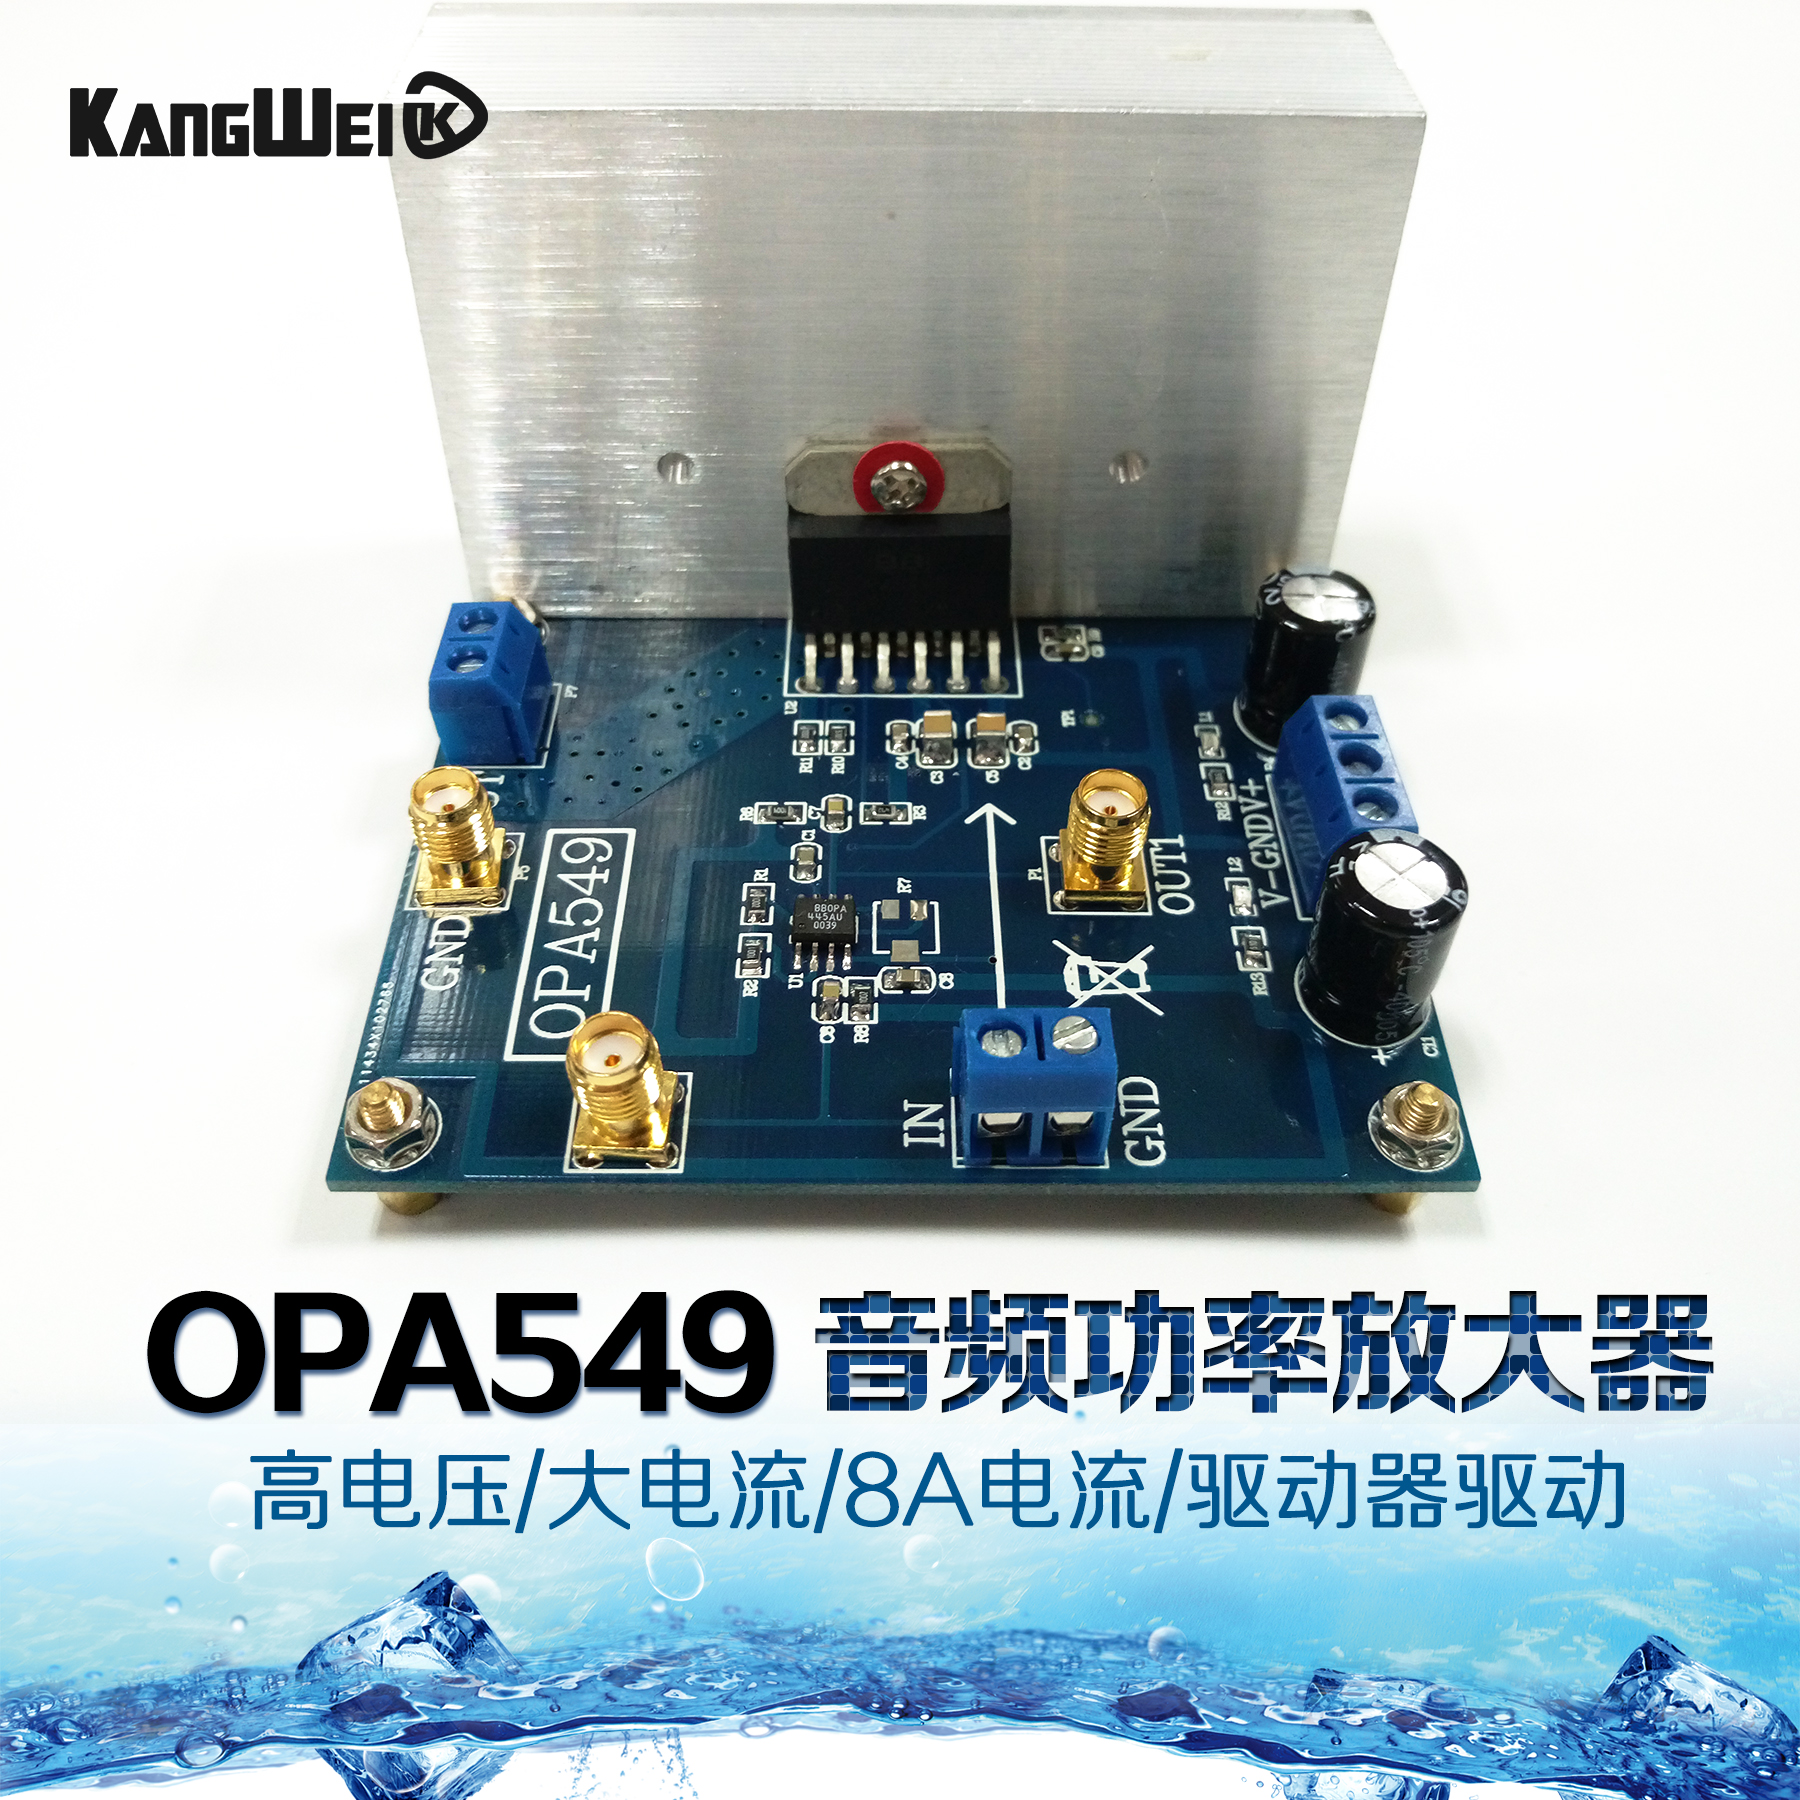 OPA549 Module Audio Power Amplifier 8A Current Driver Drive High Voltage Large Current Amplifier mje15032g mje15033g to220 8a 250v 50w power transistors complementary audio amplifier 5pcs mje15032 5pcs mje15033